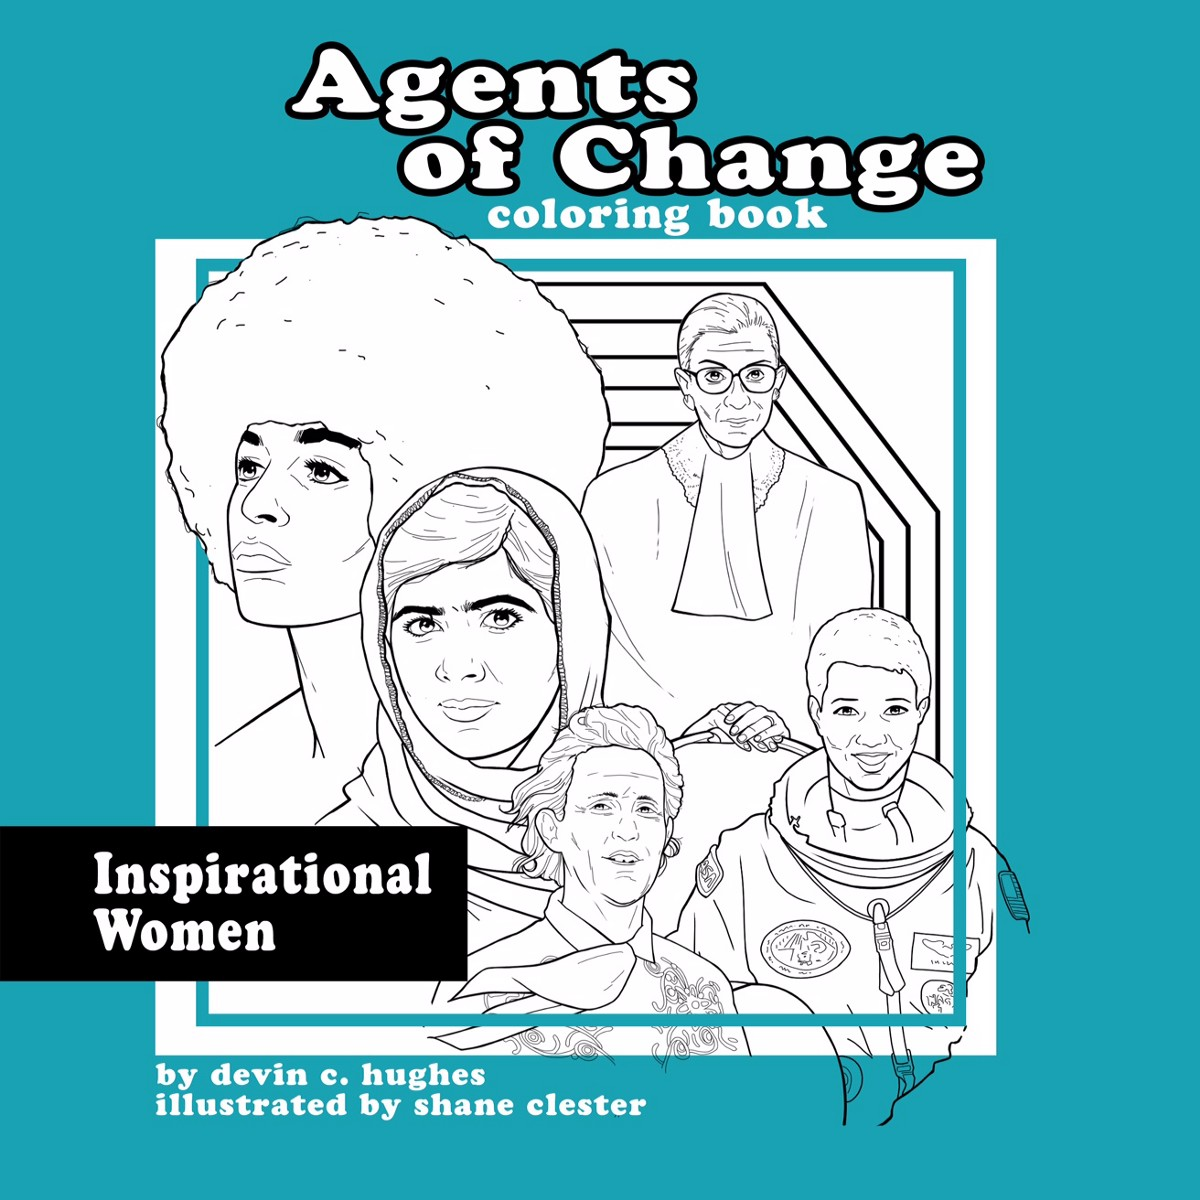 Women as agents of change: Female income and mobility in India